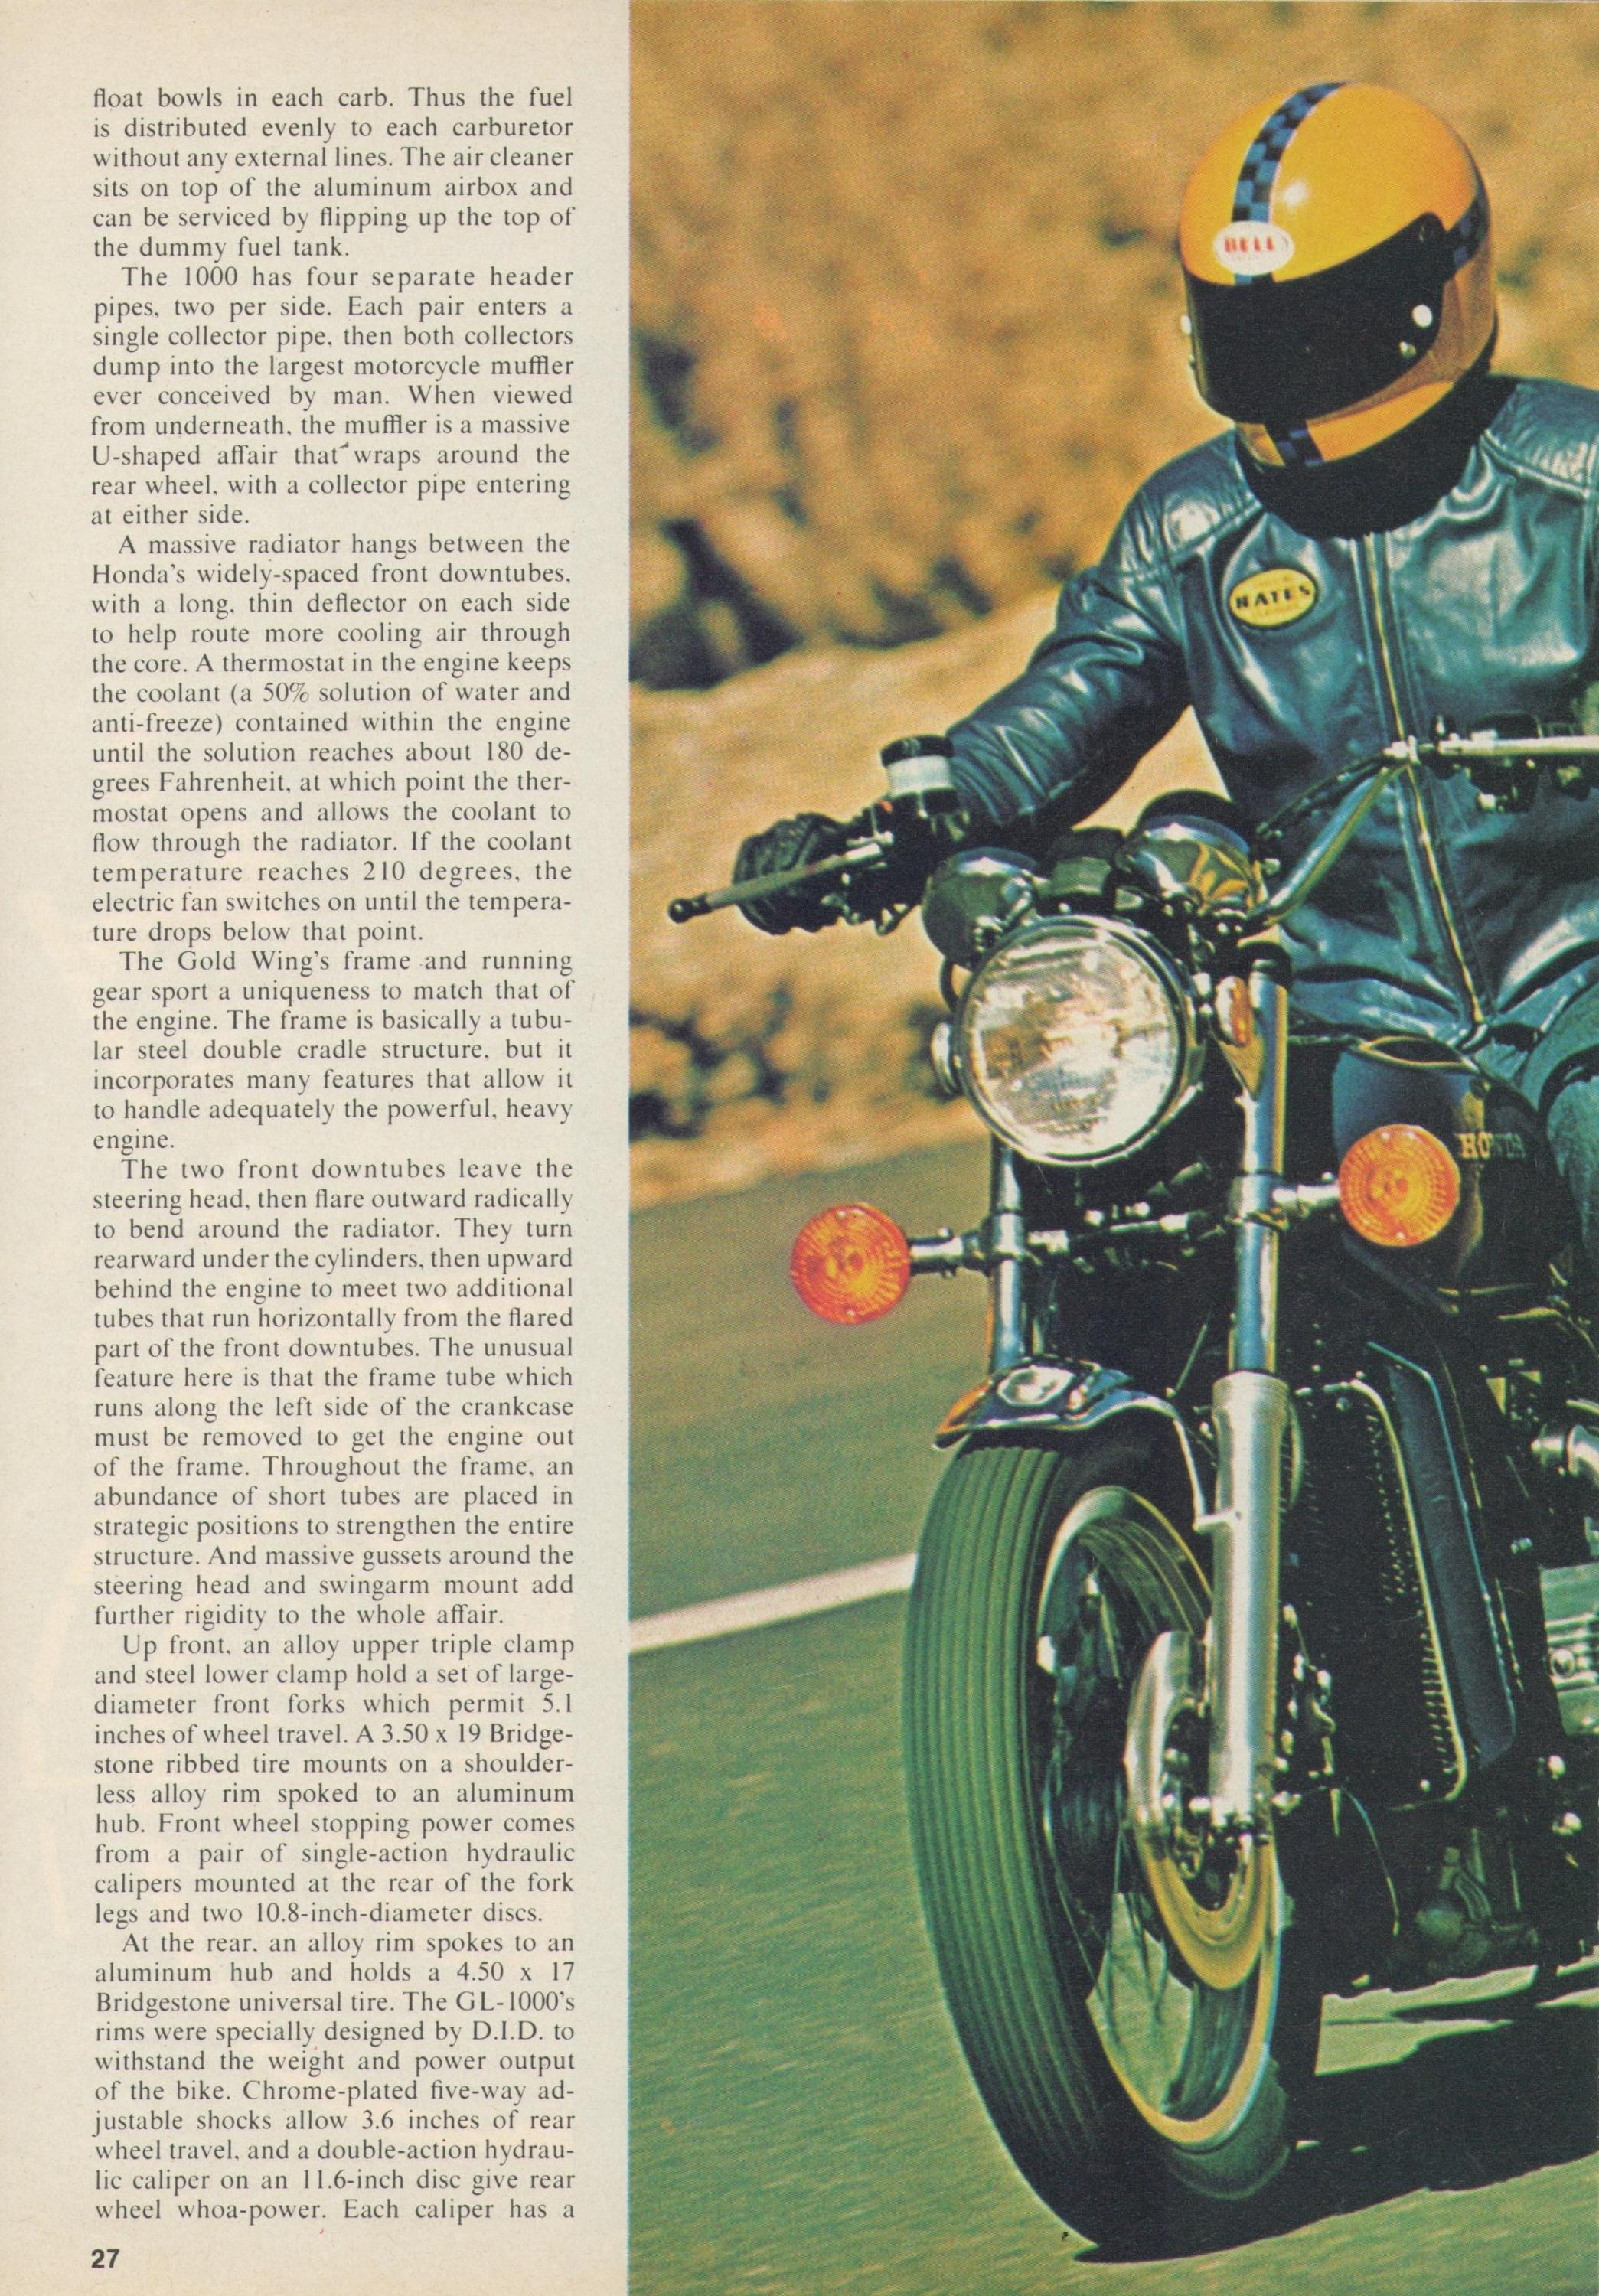 1975 GL-1000 test report Cycle Guide Magazine April 1975-1975-gl-1000-test-report-p.4.jpg